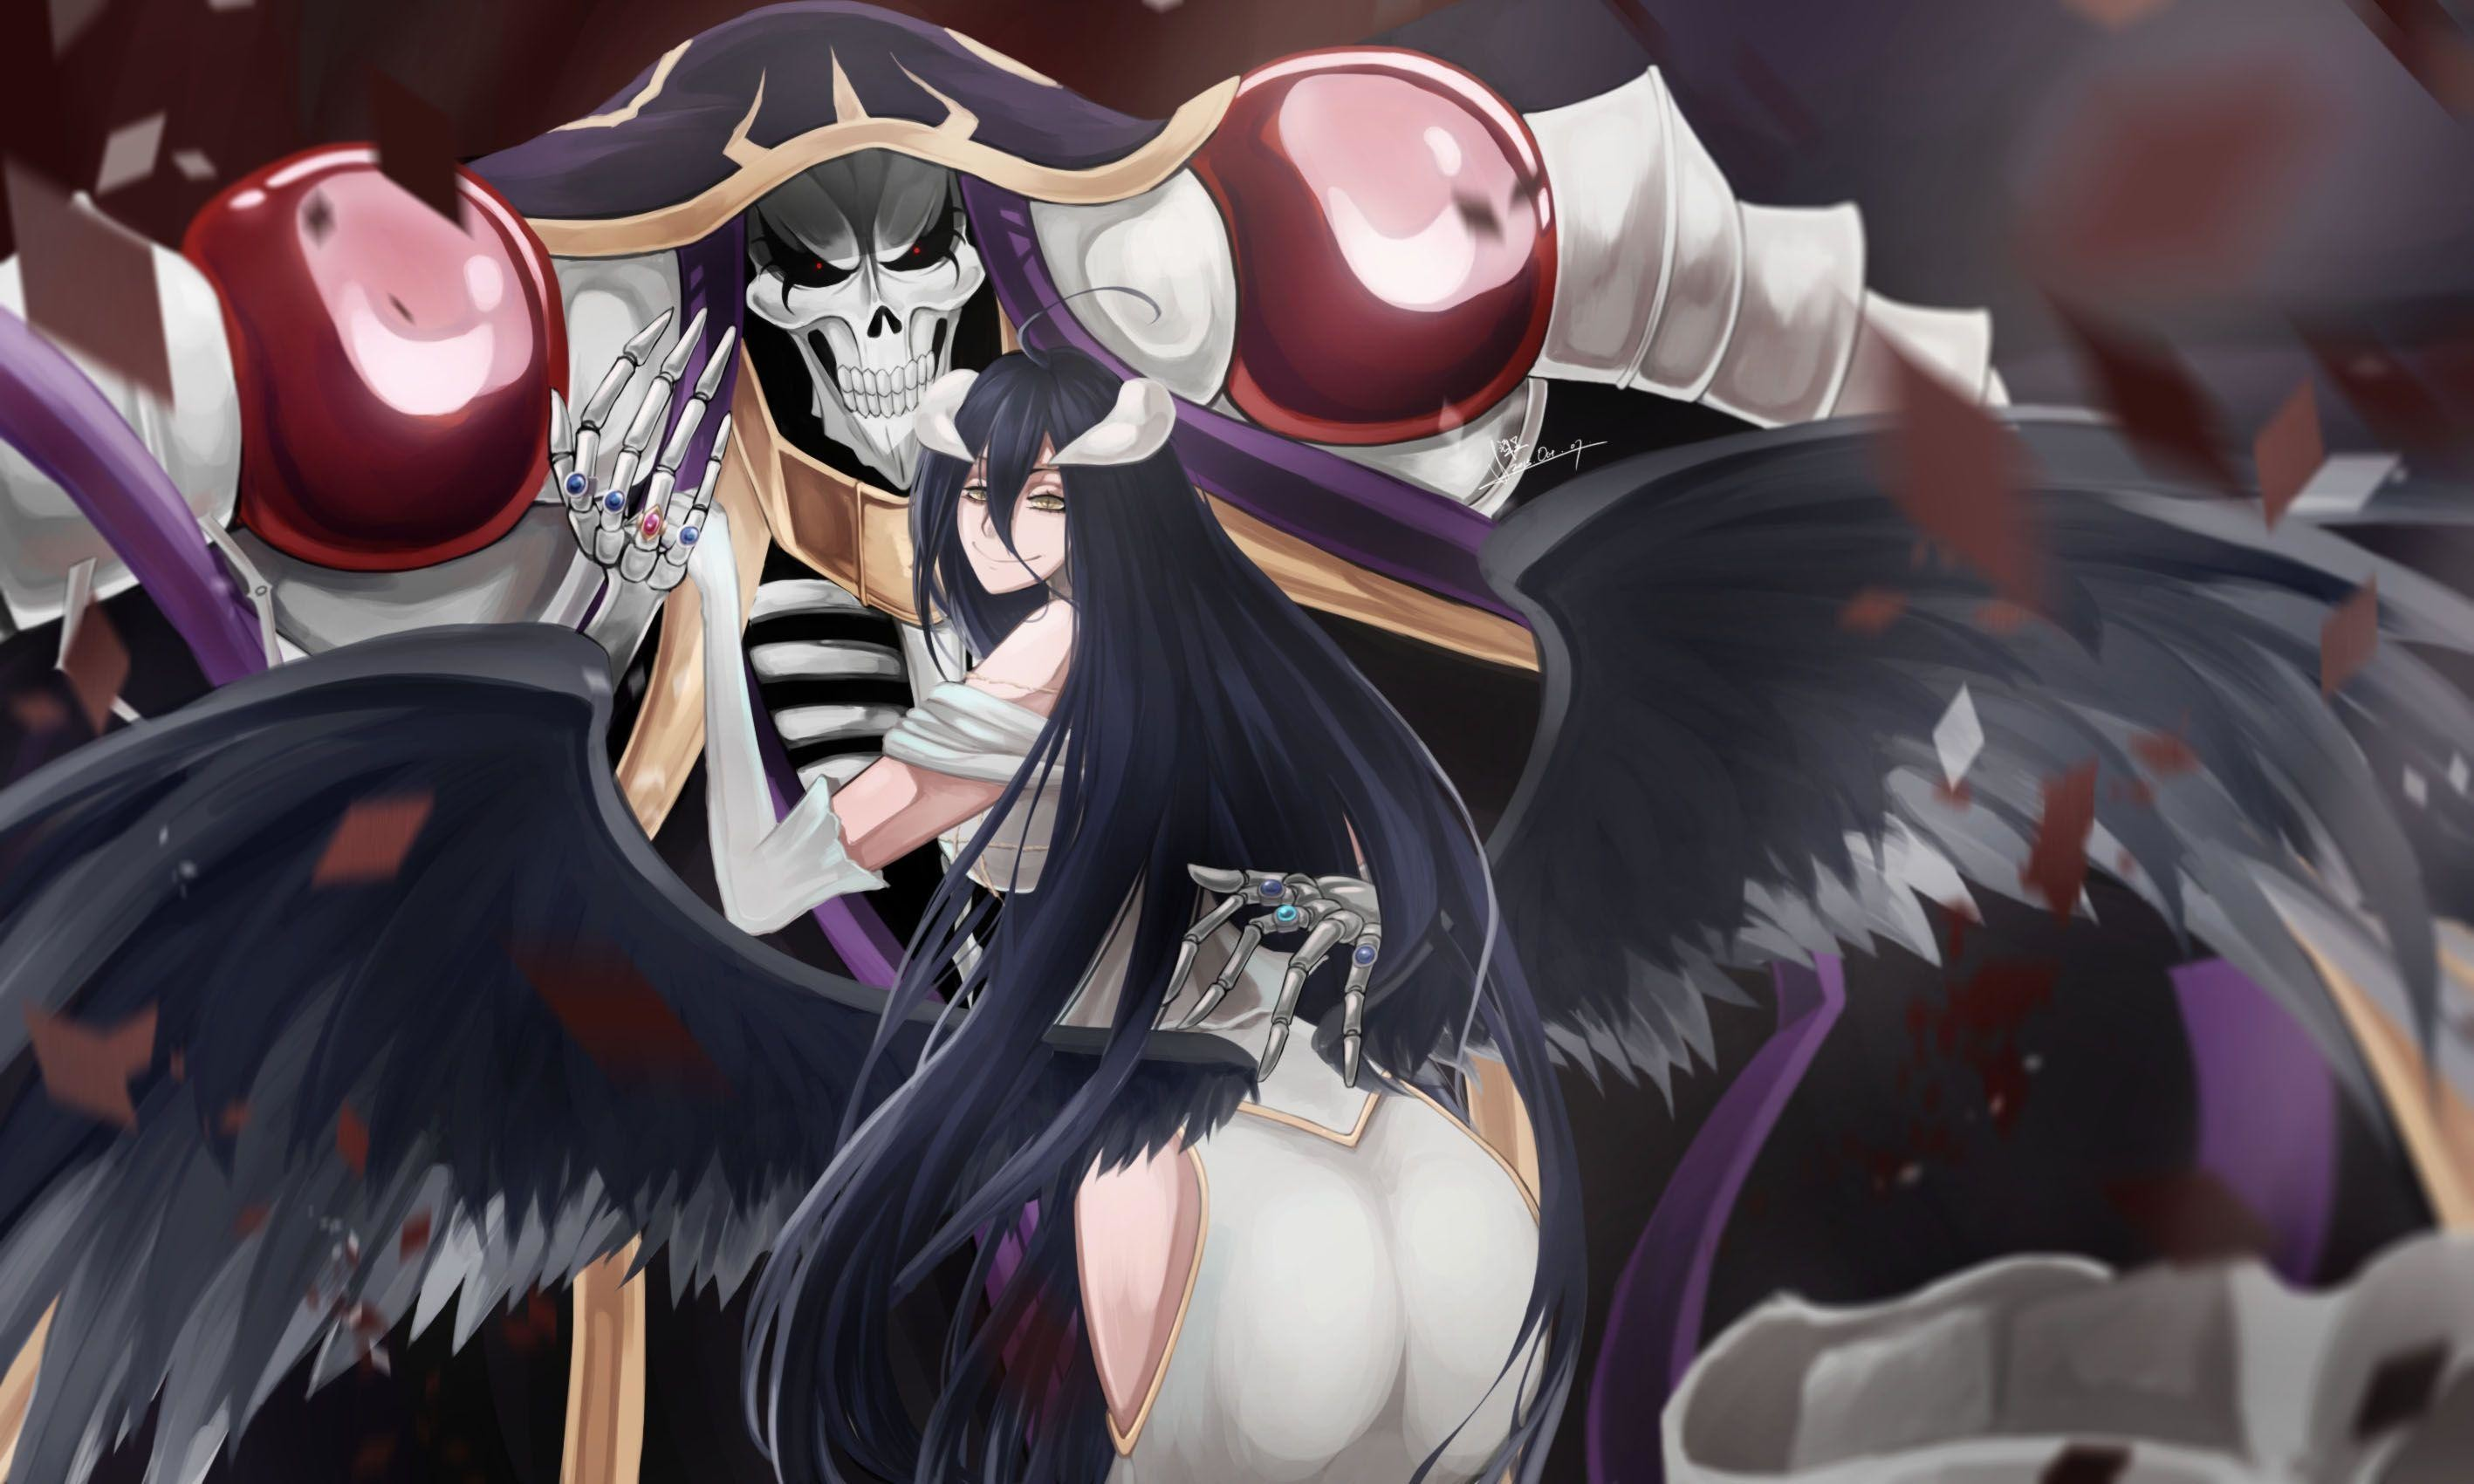 49 Albedo (Overlord) HD Wallpapers   Backgrounds – Wallpaper Abyss .